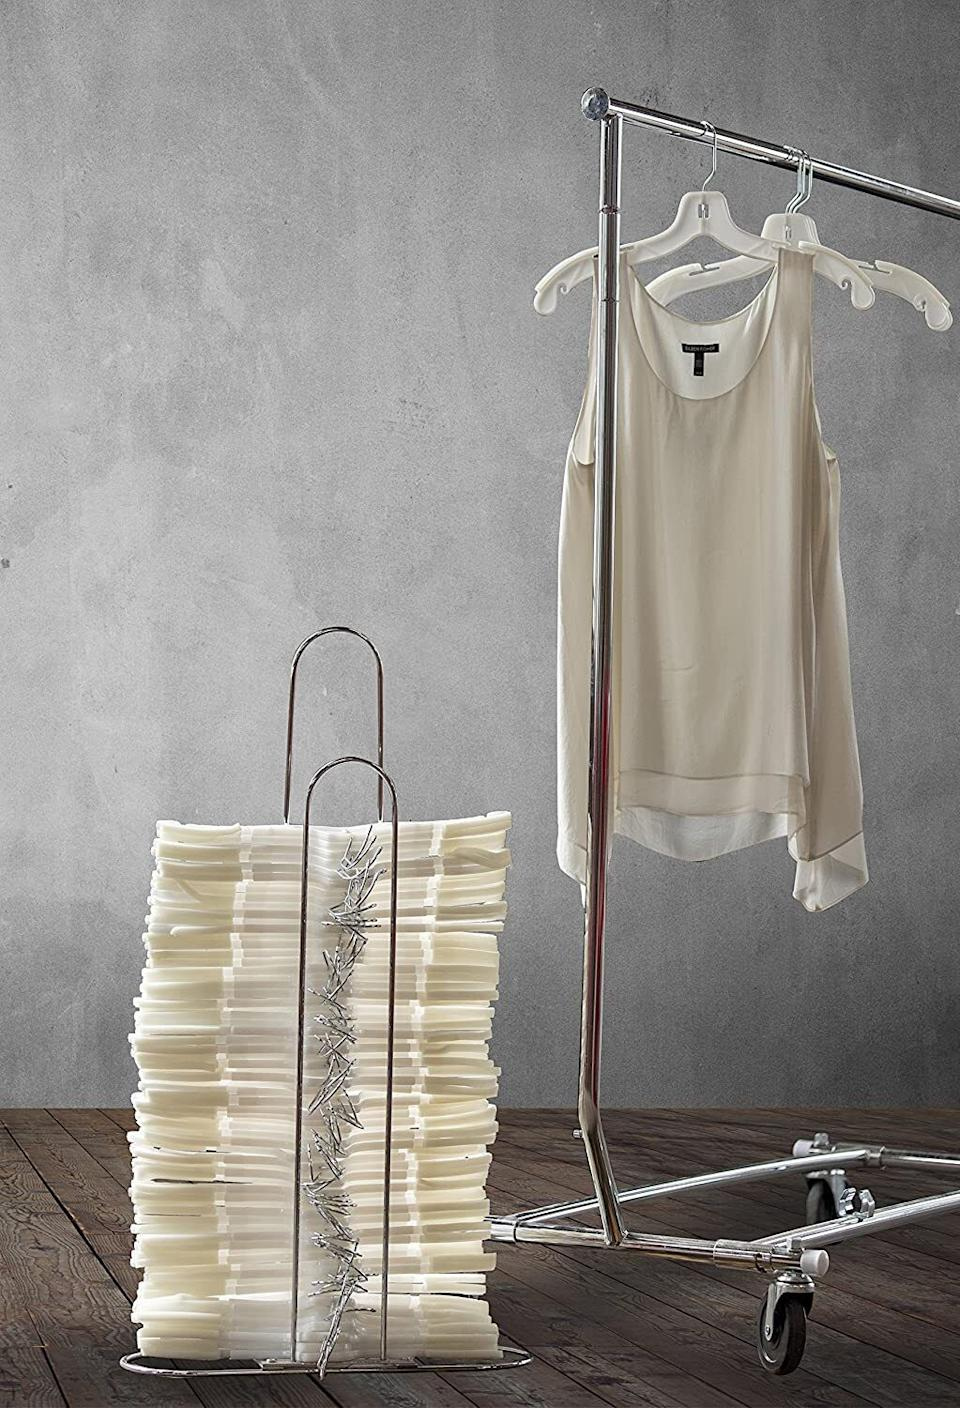 """Becauseyou're an adult and you 100% cannot have a jumbled bin of hangers.<br /><br /><strong>Promising review:</strong>""""We just moved from a two-bed to a one-bed and are trying to squeeze everything in. Anxiety is at a full-time high with all the clutter but this product helped us organize our closet while freeing up hanging space!<strong>No more random hangers here, there, and everywhere, tangled up and cluttering a room. It was SO simple to assemble. Took me maybe five minutes (tops).</strong>"""" --<a href=""""https://amzn.to/3h5ATuX"""" target=""""_blank"""" rel=""""noopener noreferrer"""">Amazon Customer</a><br /><br /><strong>Get it from Amazon for <a href=""""https://amzn.to/3haTUvU"""" target=""""_blank"""" rel=""""noopener noreferrer"""">$20.63</a>.</strong>"""